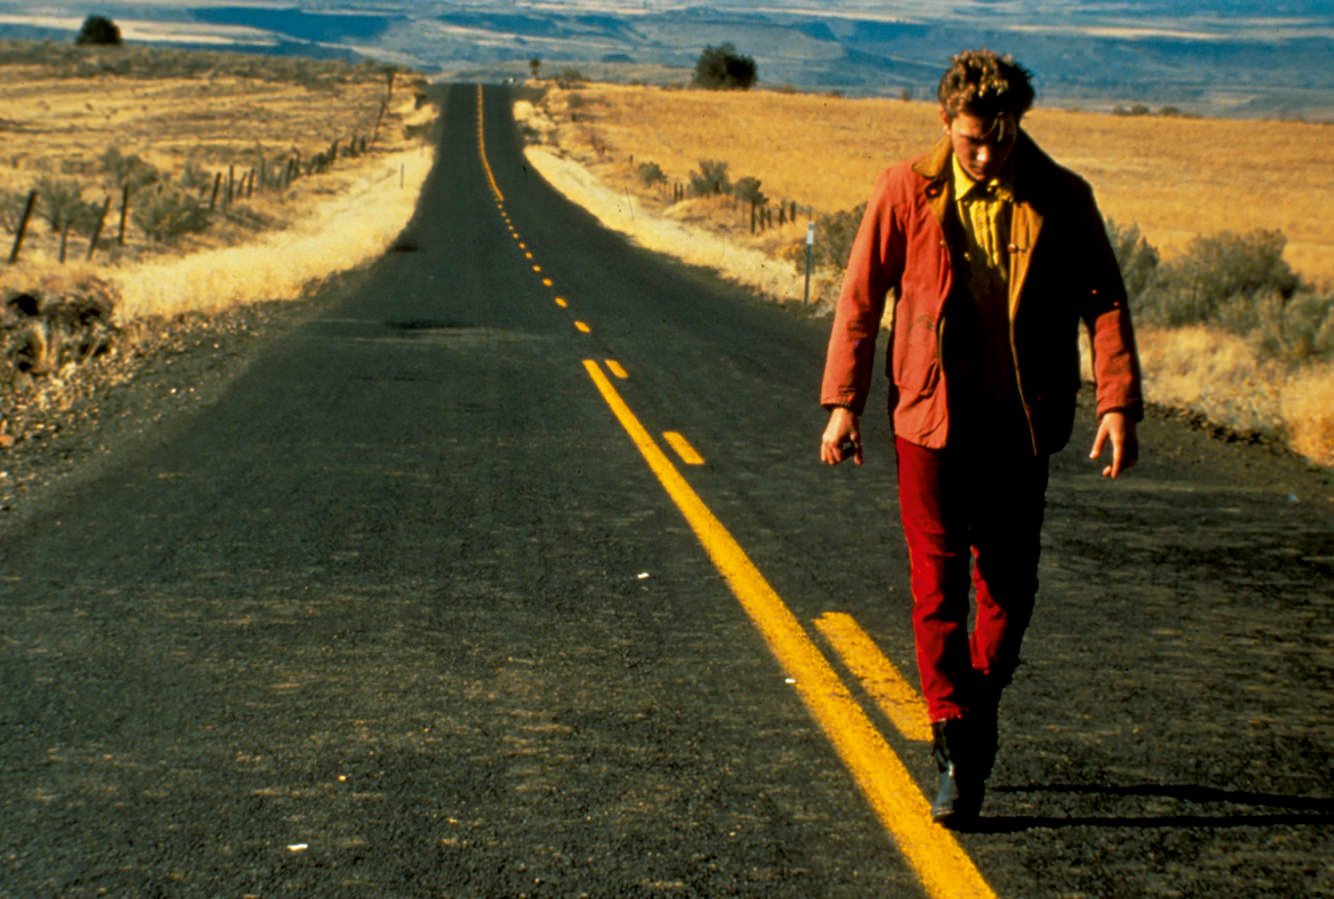 """Gus Van Sant is the subject of a retrospective at the Cinémathèque française. Above, River Phoenix in My Own Private Idaho, released in 1991.  Gus Van Sant's career, haloed with the 2003 Palme d'Or for his incredible Elephant, inspired by the killings at the high school in Columbine, has never followed a straight path. For the last 30 years it's oscillated between ultra-personal projects and others which weren't initiated by him, chiefly in the writing of the scenario. The Sea of Trees is obviously one of the latter, but then that's also produced excellent results recently with the majestic Promised Land where his fetish actor Matt Damon finally takes the temperature of a more delicate movie-making in-between two blockbusters. """"Gerry, Last Days, Elephant, My Own Private Idaho, all those films were written by me, explains Gus Van Sant. """"Those were the most experimental in my filmography and that's great. Maybe that's what I should always do… or not. I also like the idea of putting my voice into commissioned work."""""""